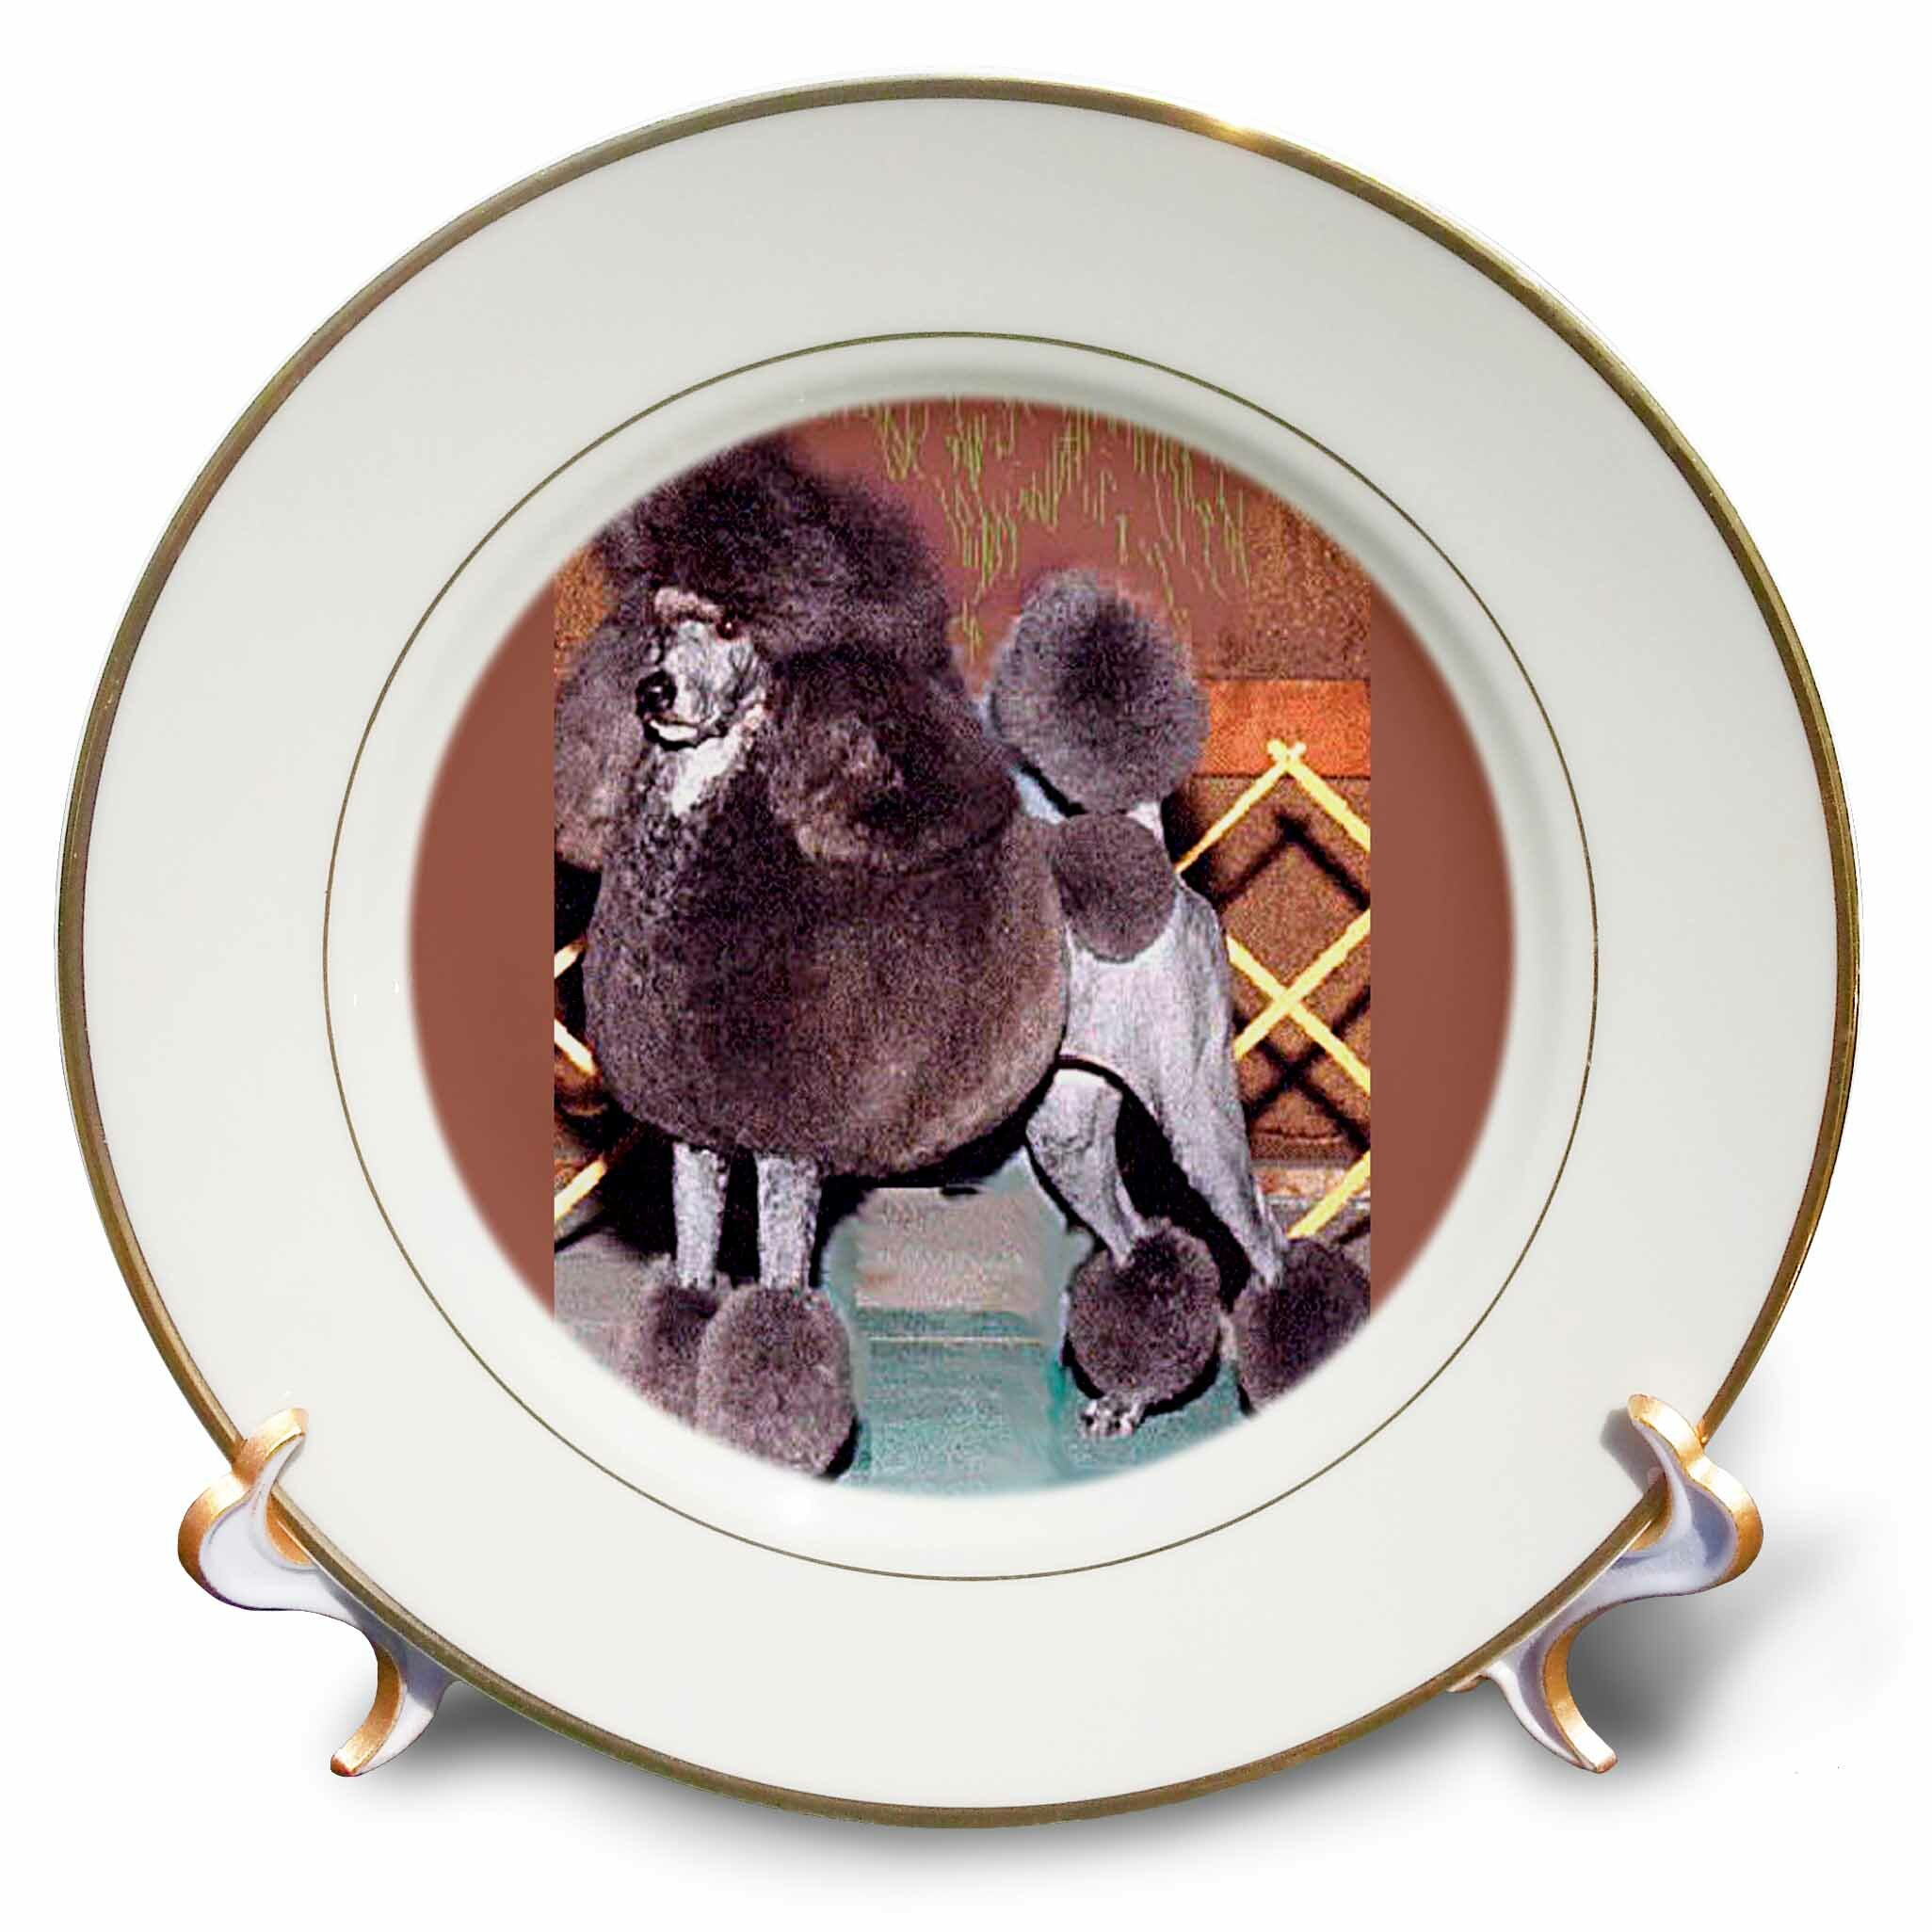 East Urban Home Porcelain Standard Poodle Decorative Plate Wayfair